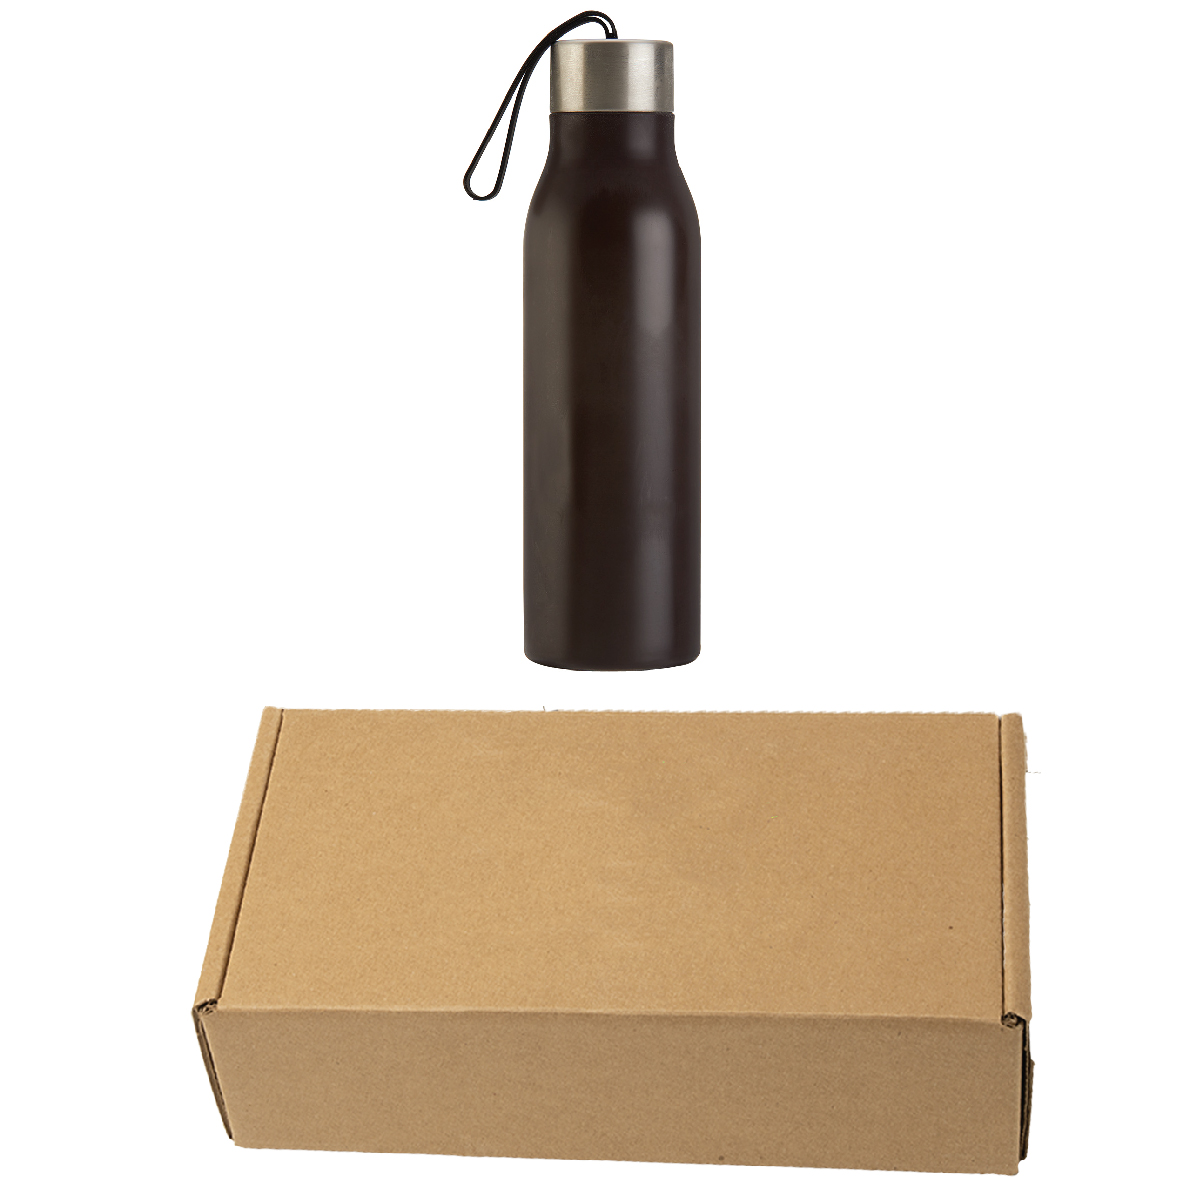 Black Mood Stainless Steel Bottle with Gift Box 24 oz